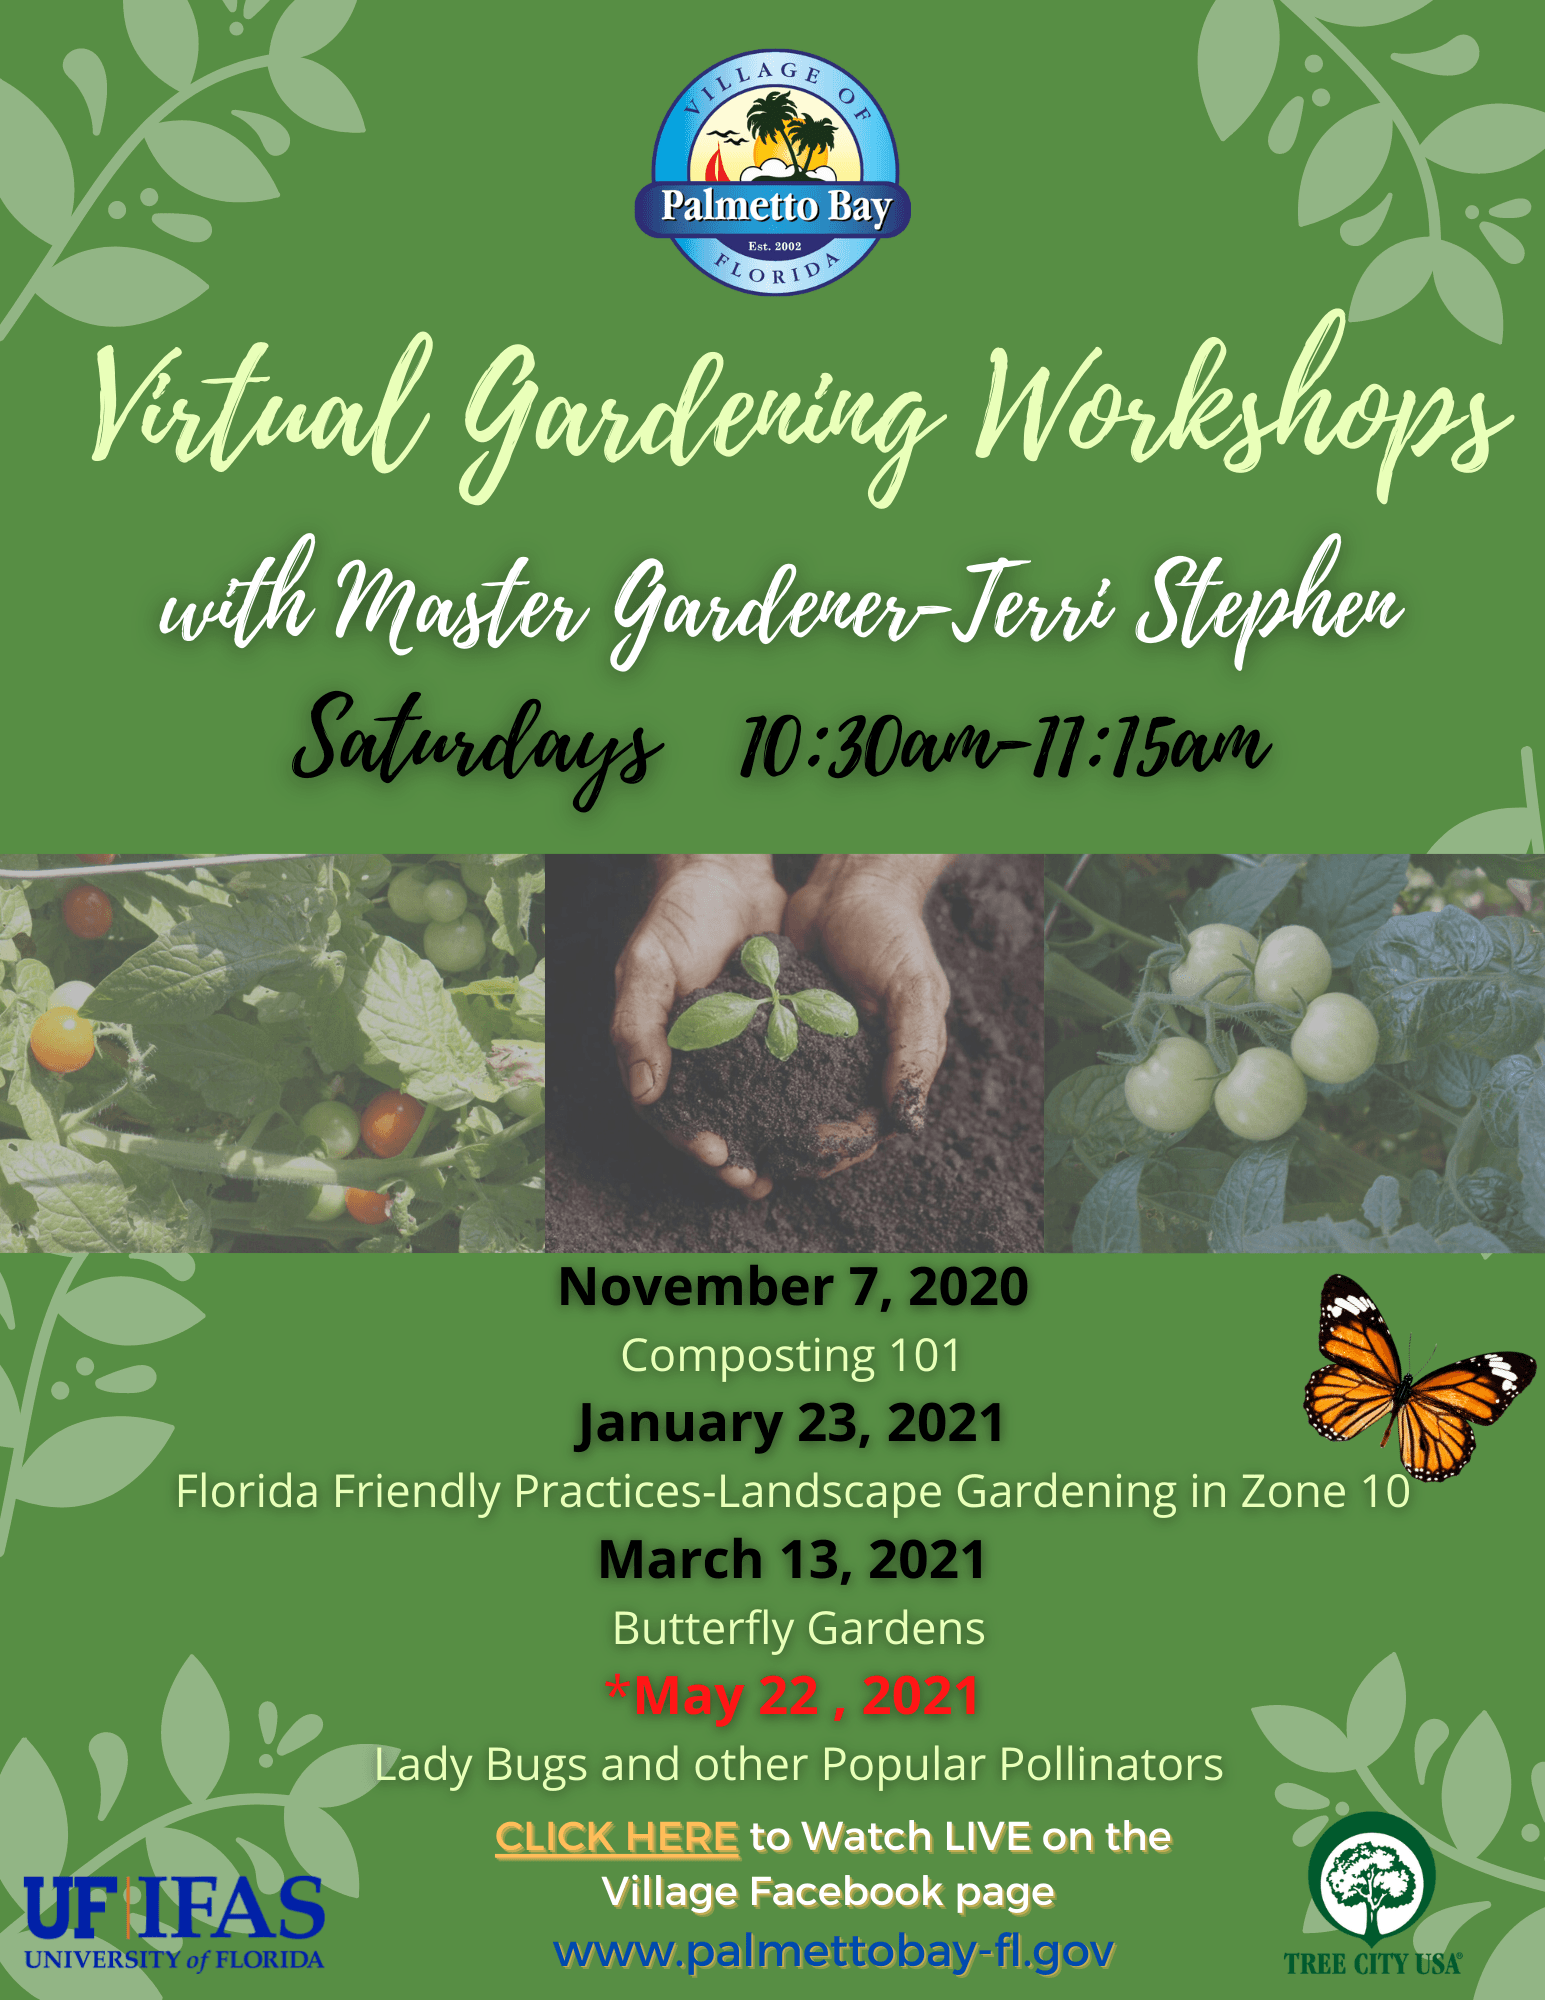 Virtual Gardening Workshops 2020-2021